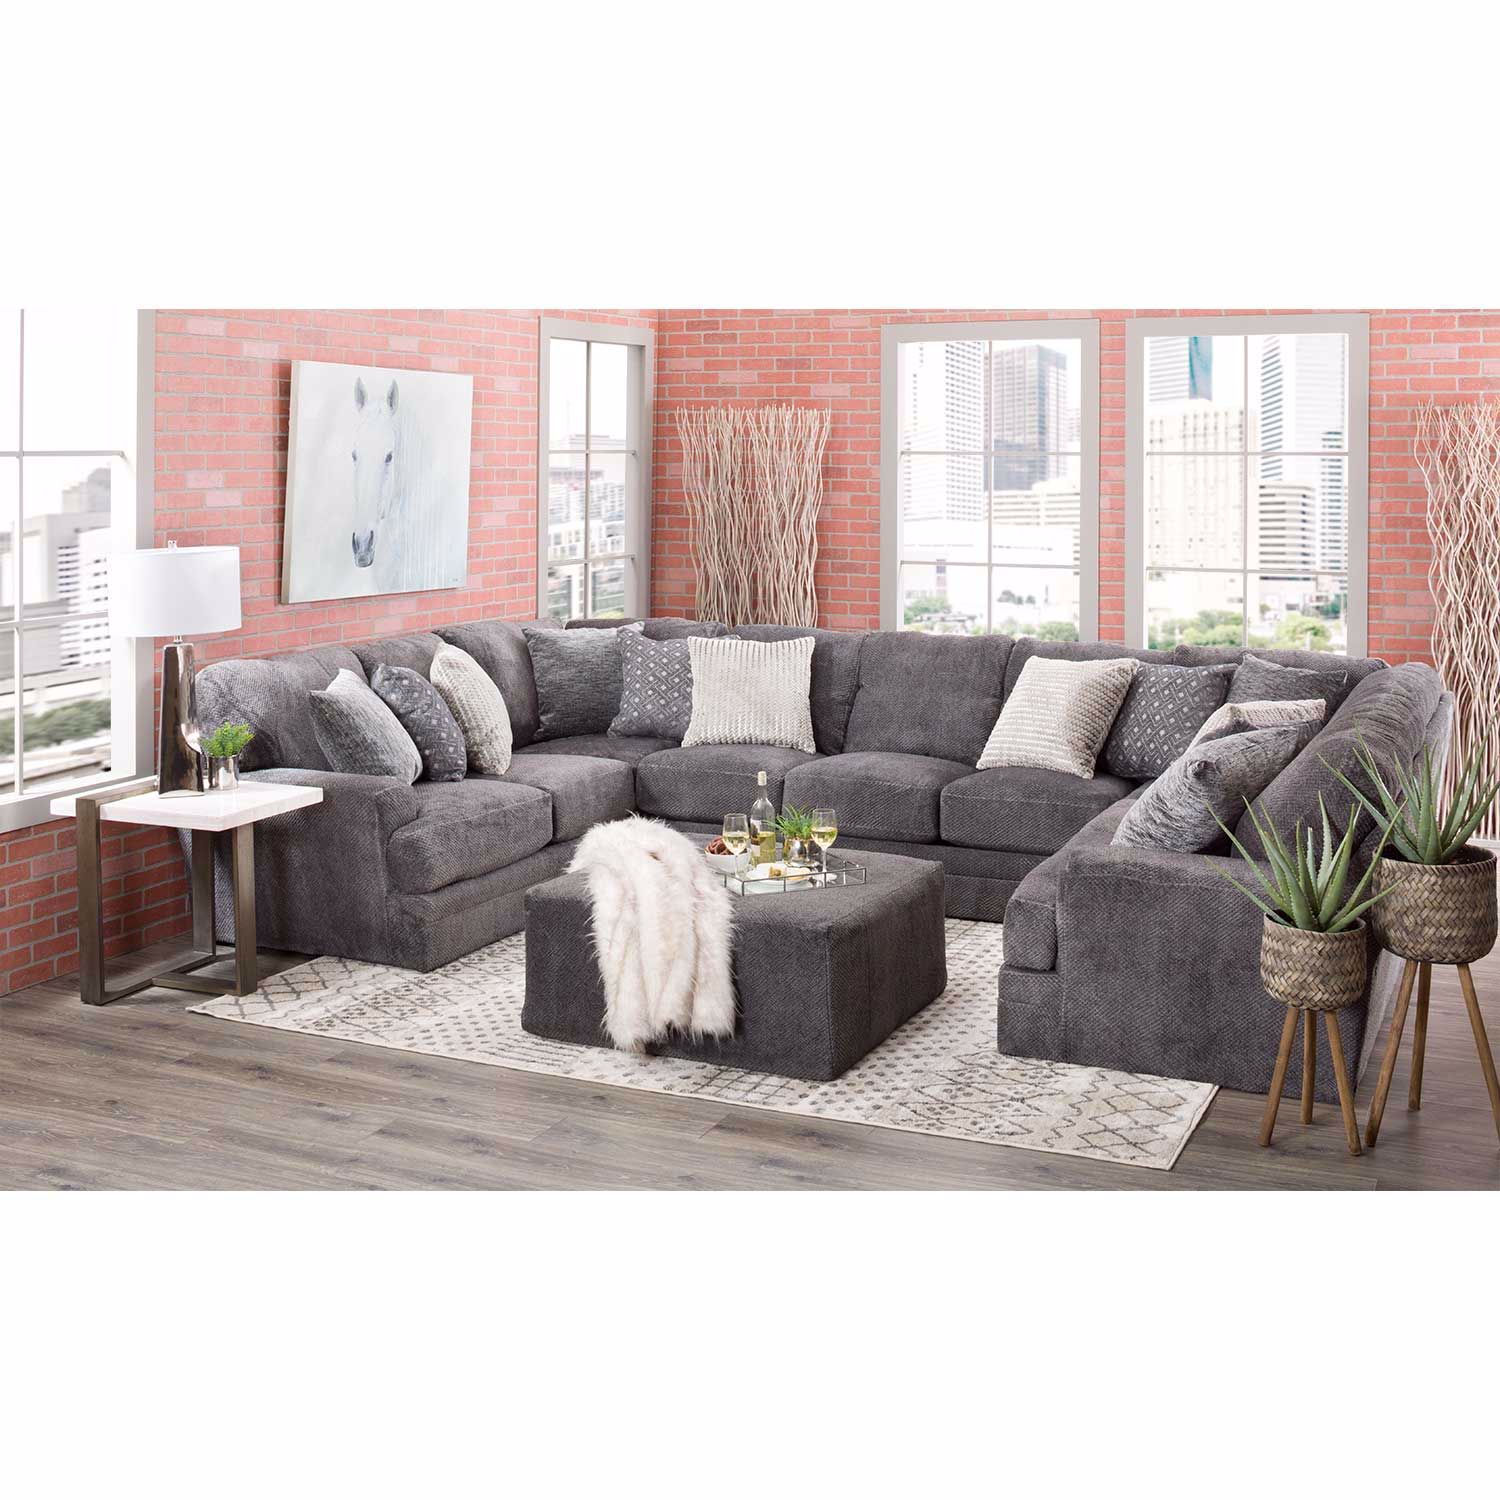 Picture of Mammoth 3 Piece Sectional with LAF and RAF Sofa